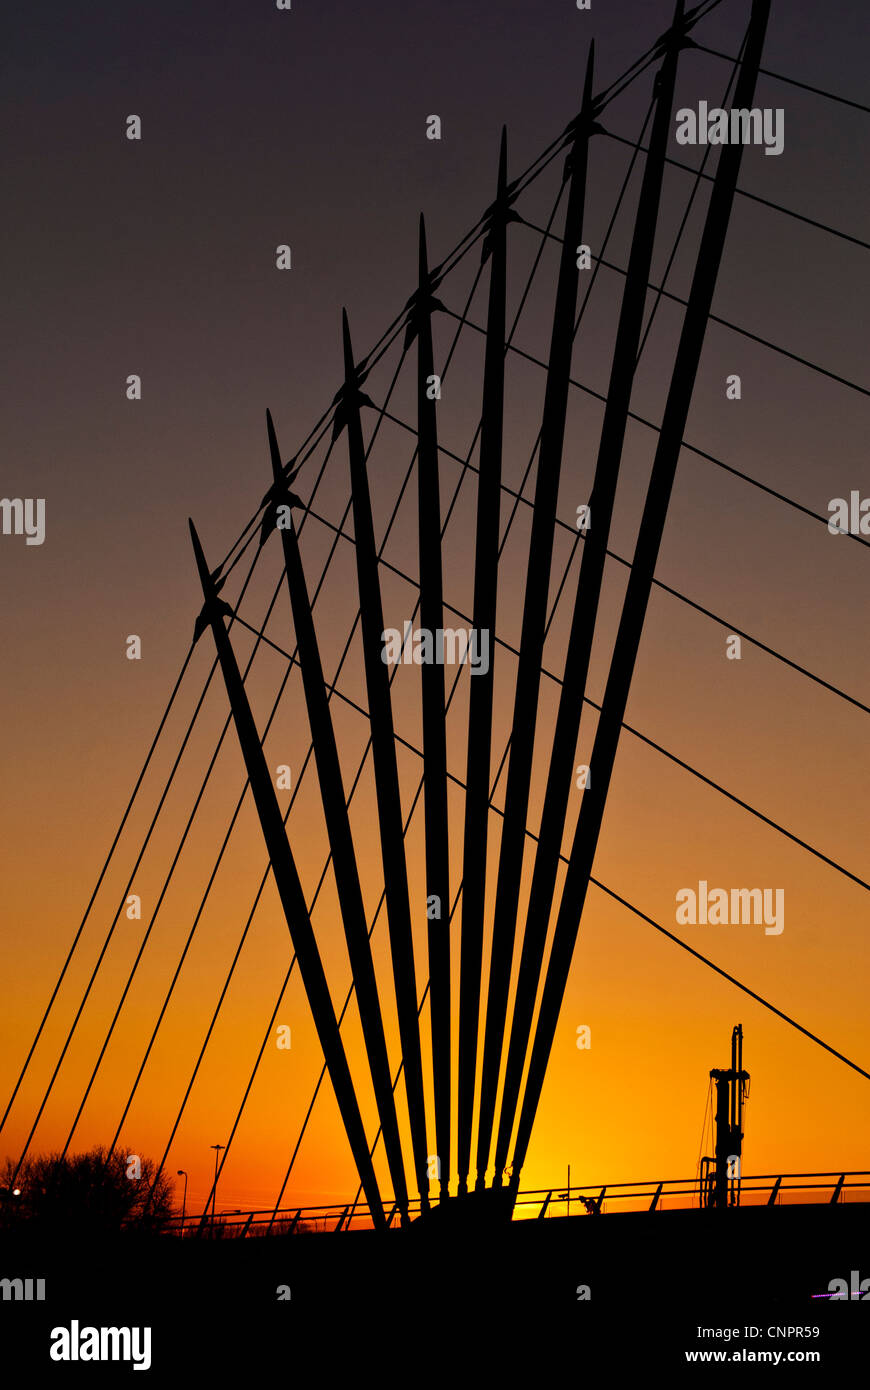 The Media City swing bridge at Salford Quays, Manchester, England, UK - Stock Image